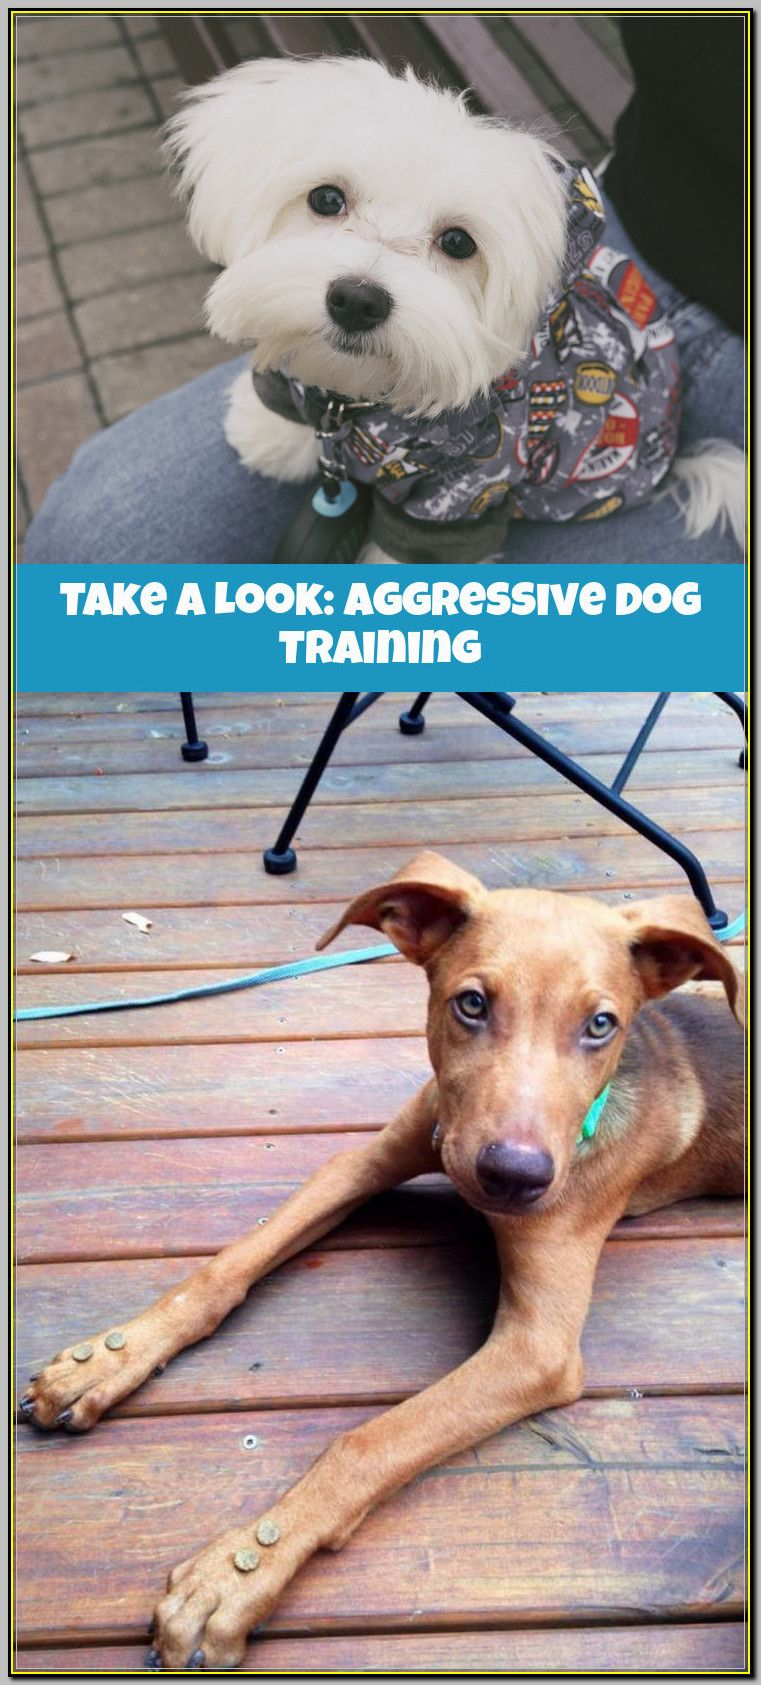 New to aggressive dog training consider this advice in